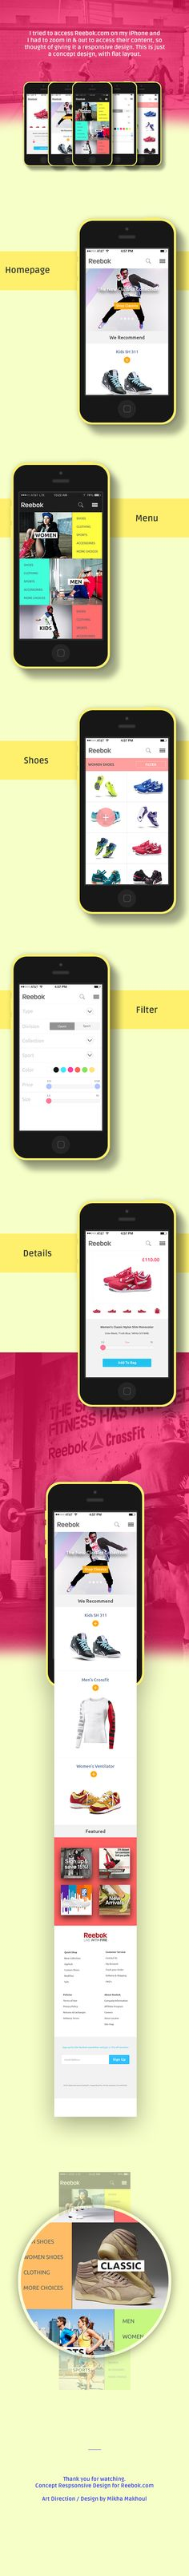 Reebok Mobile Site by Mikha Makhoul, via Behance